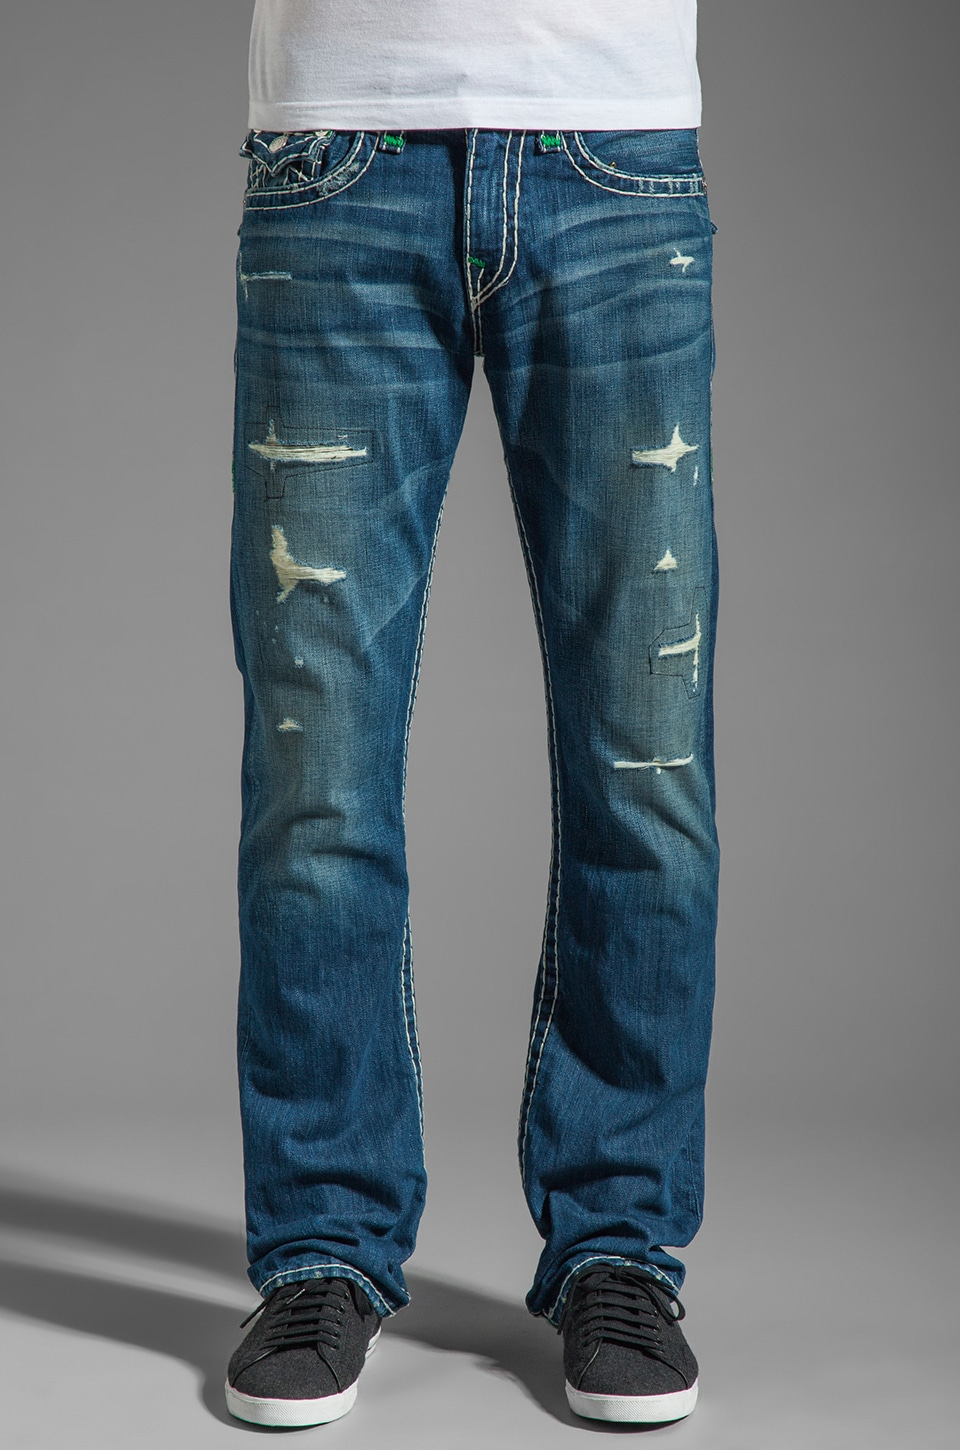 True Religion Ricky Straight Leg in Shoot Out